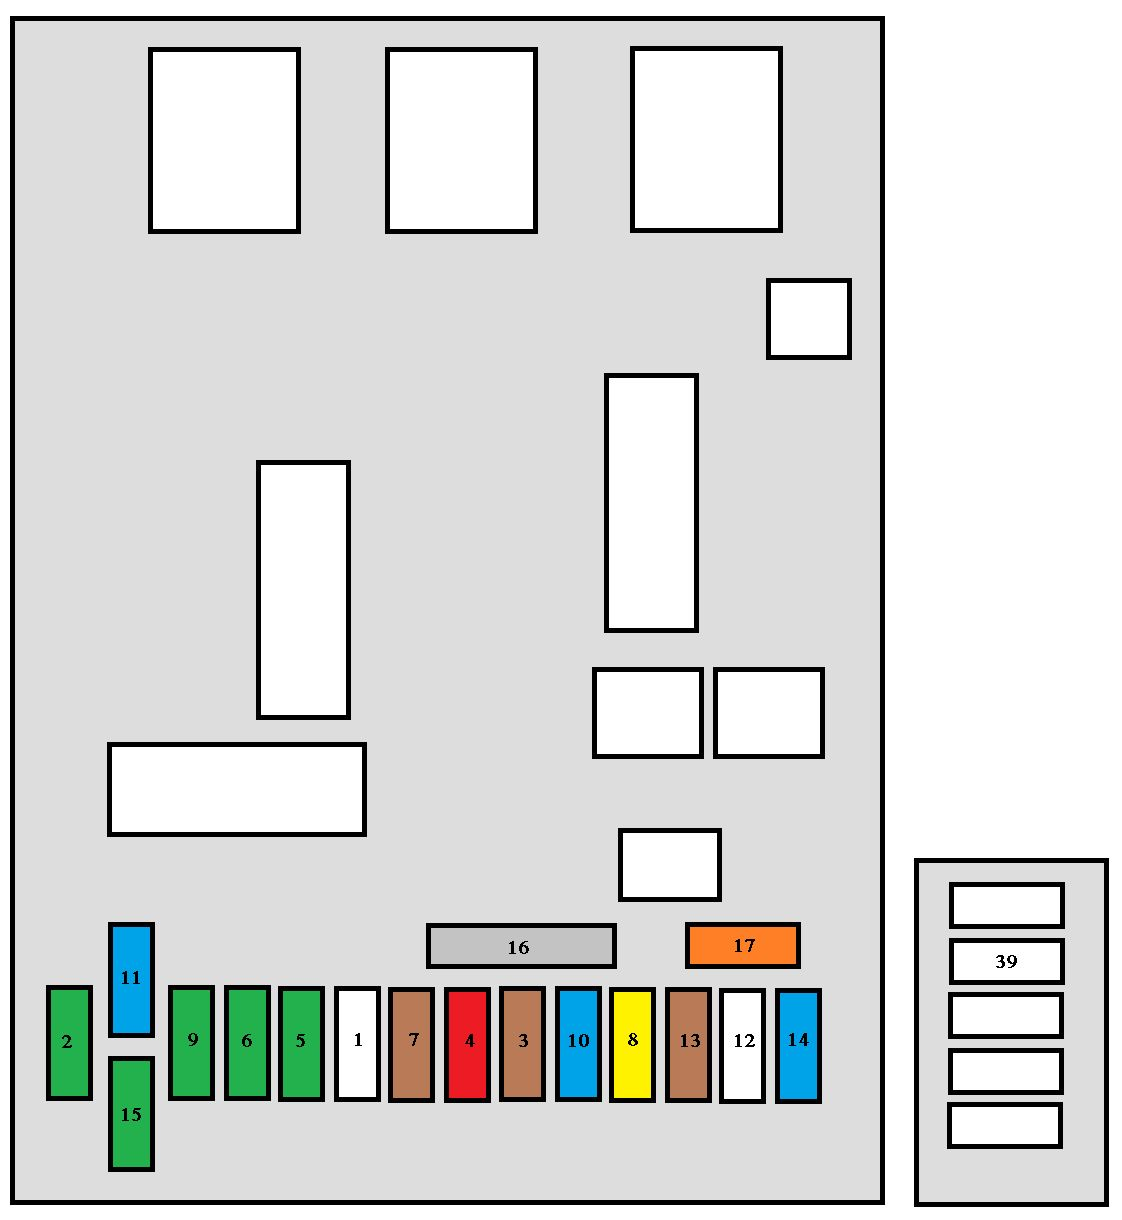 fuse box diagram peugeot 206 wiring library peugeot 206 1 4 hdi fuse box diagram fuse box [ 1122 x 1220 Pixel ]